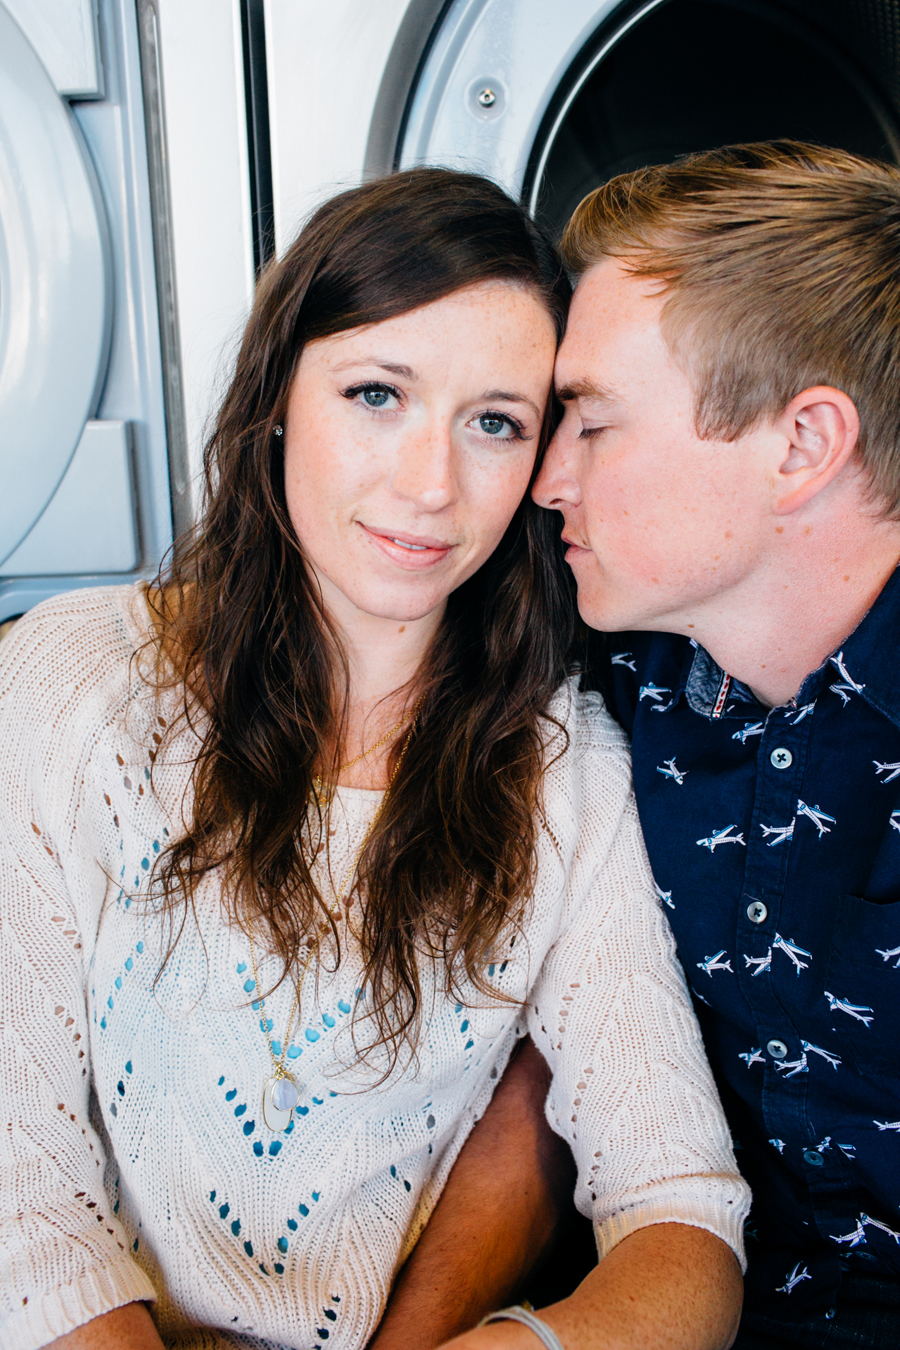 009-bellingham-engagement-lifestyle-photographer-photo-brio-laundromat.jpg